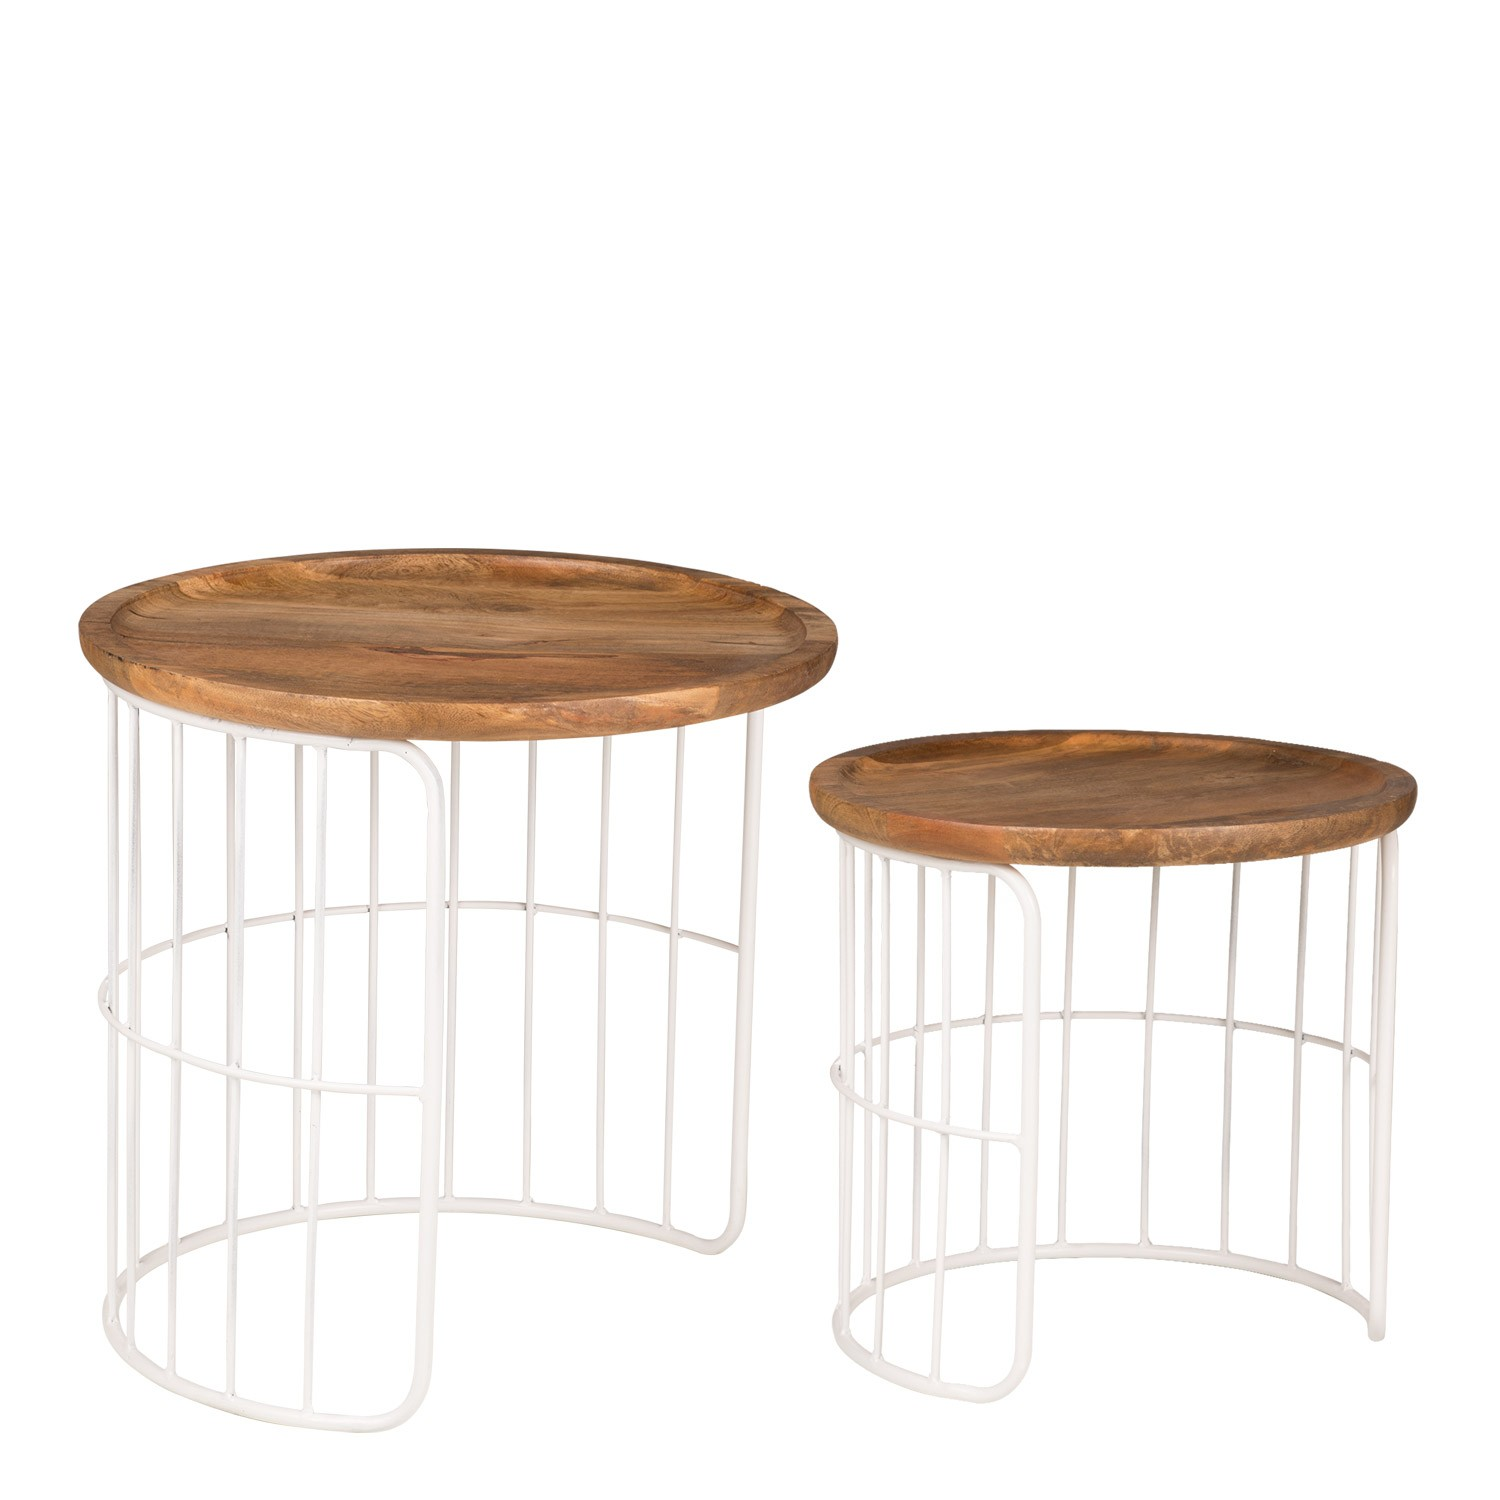 Round Auxiliary Nesting Table in Recycled Wood & Steel Ound , gallery image 1